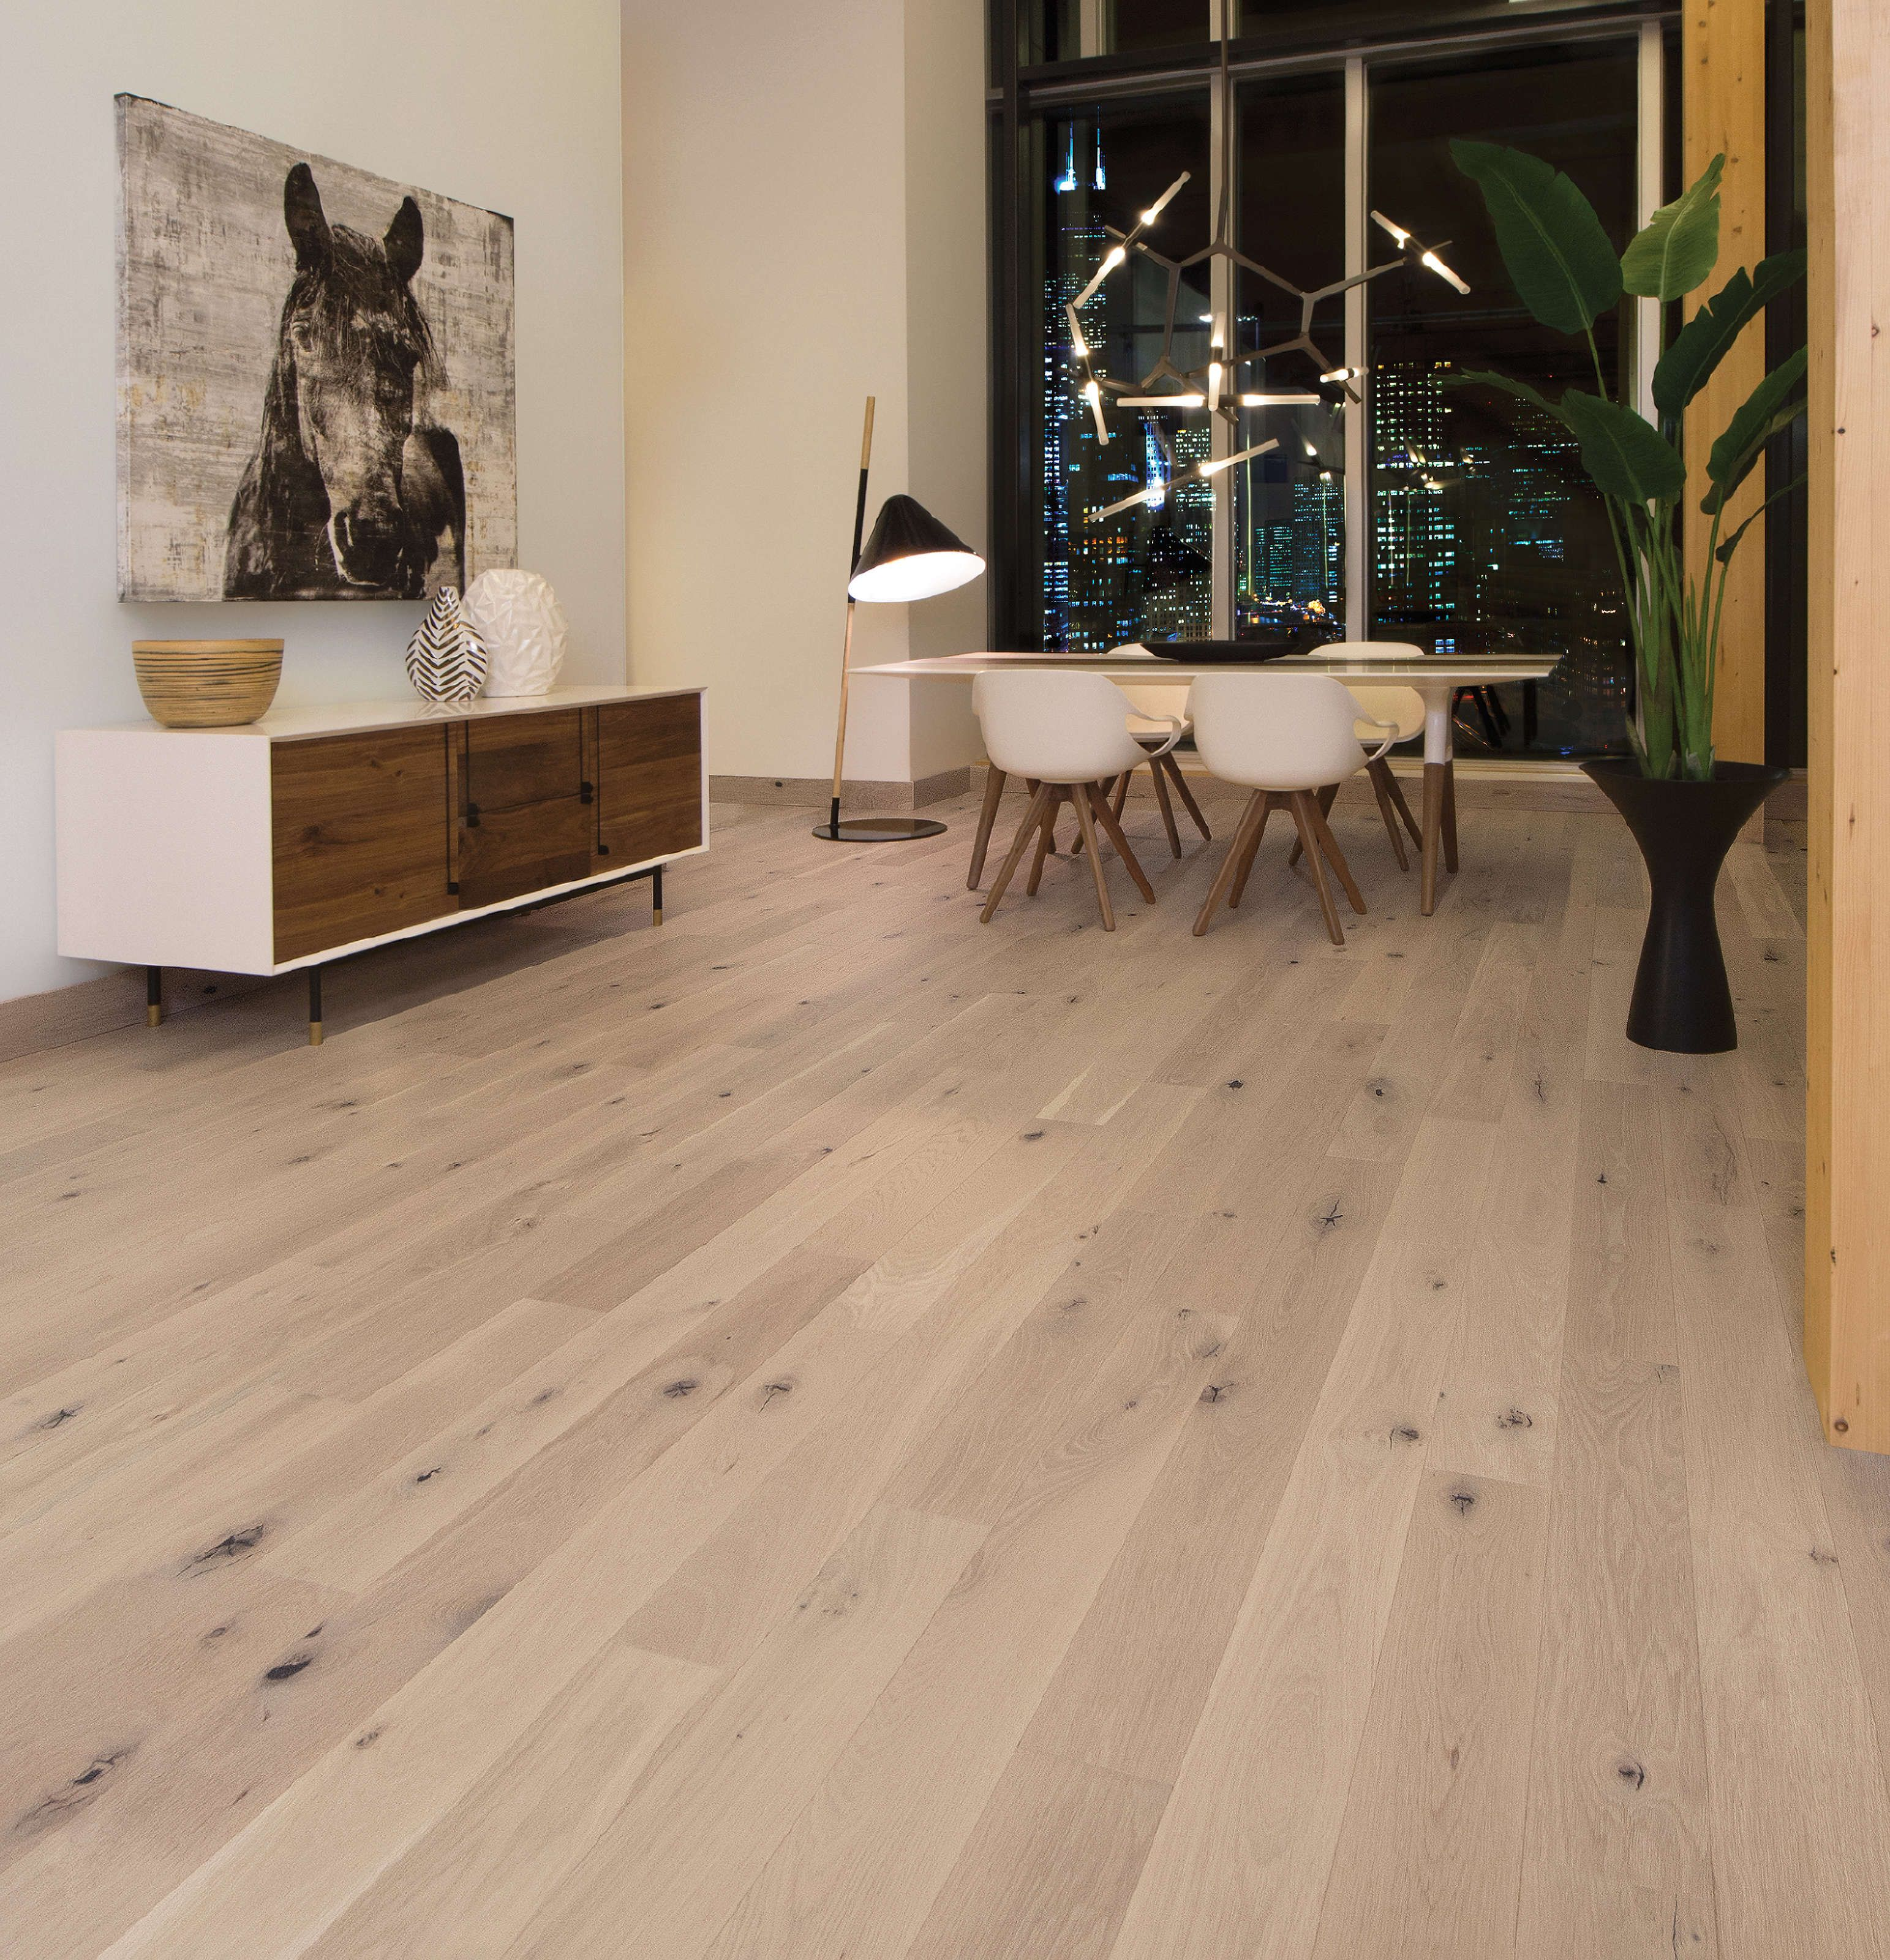 Mirage Floors The World S Finest And Best Hardwood White Oak Mist Heavy Character Flaircollection Duramatt Whiteoak